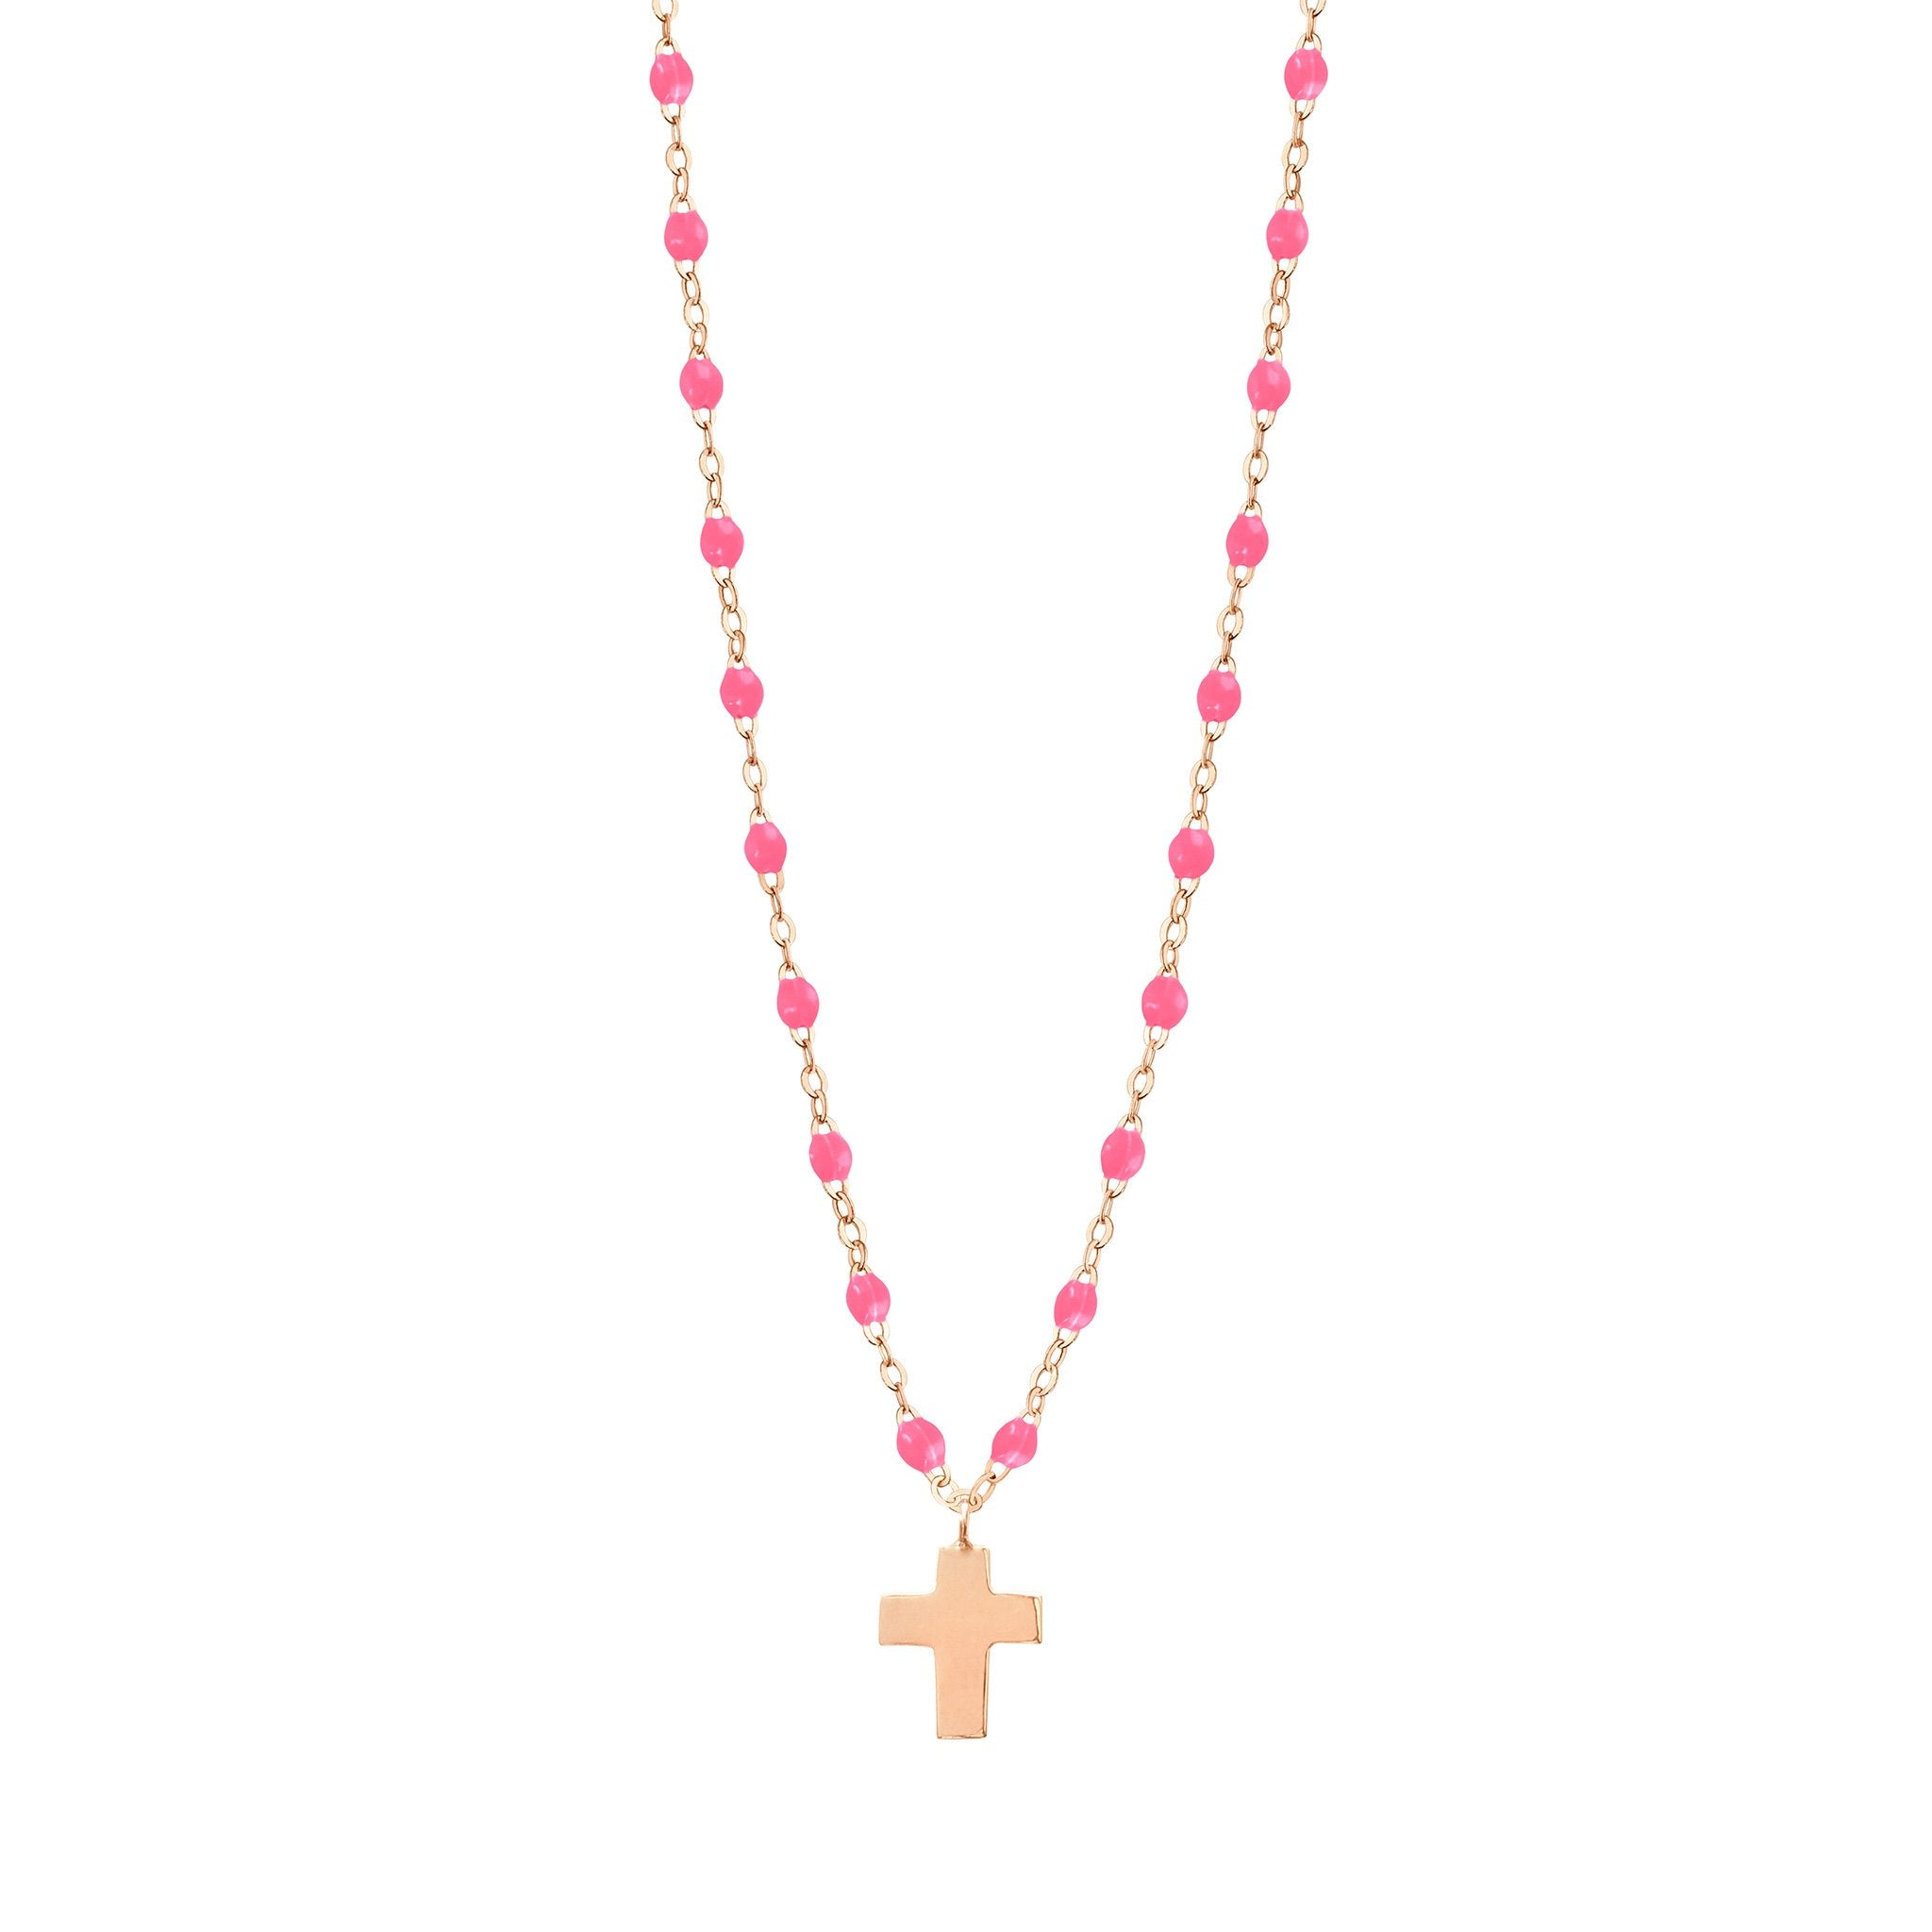 Gigi Clozeau - Cross Charm Classic Gigi Pink necklace, Rose Gold, 16.5